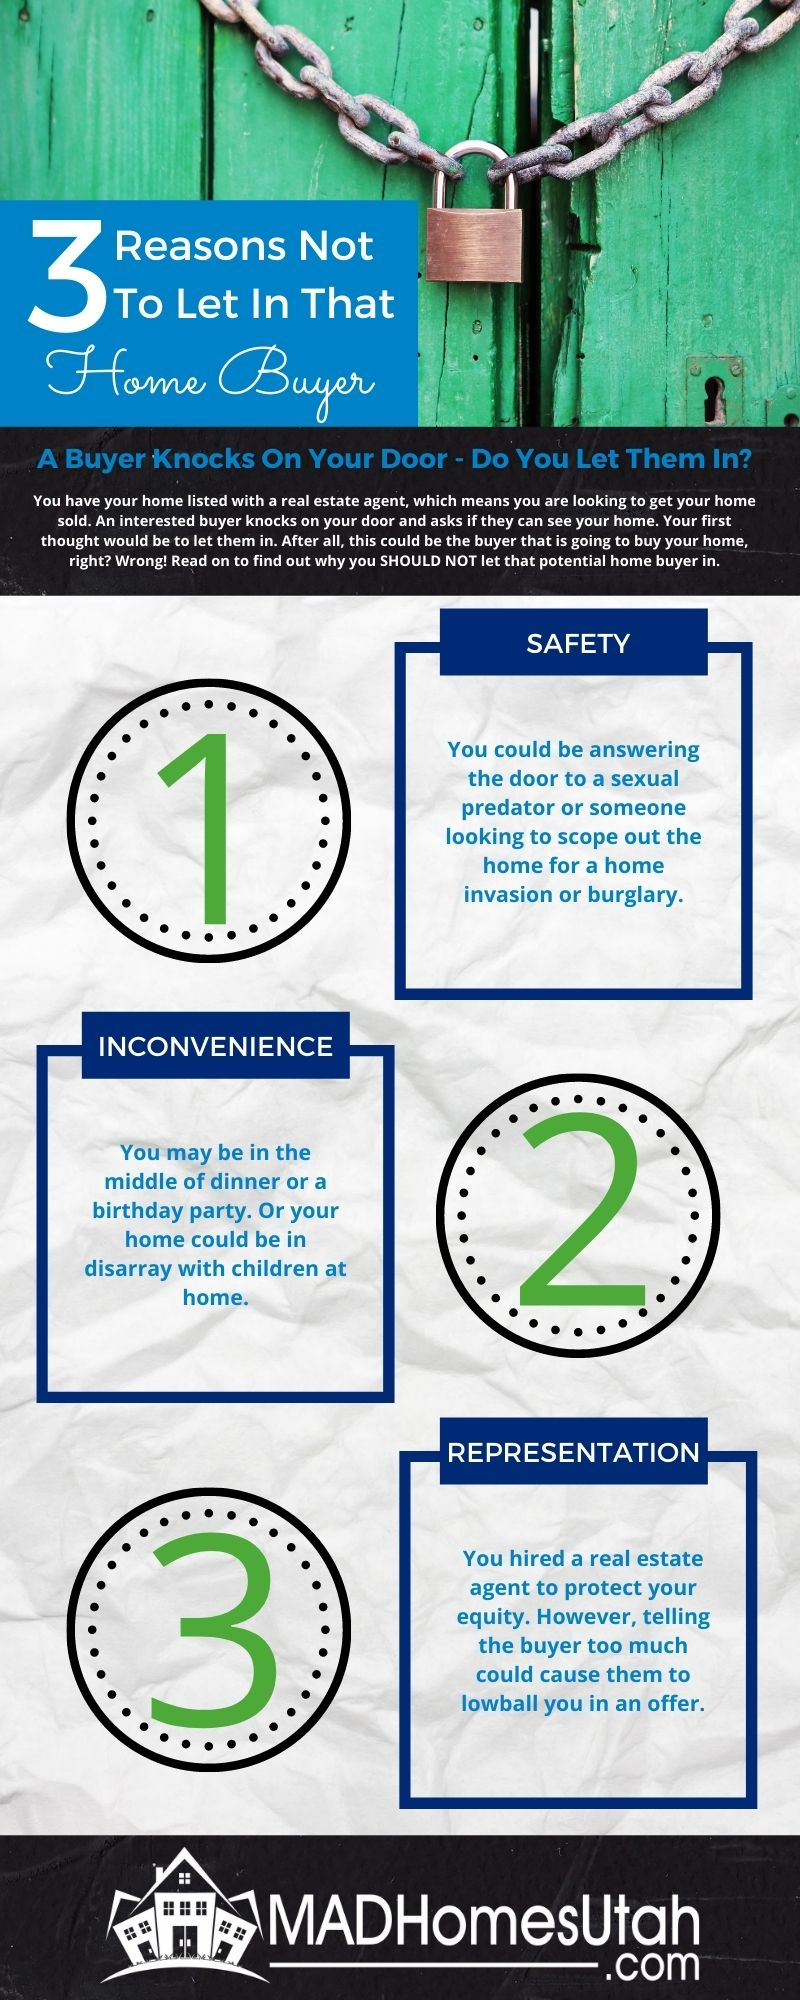 Image- Infographic of the 3 reasons you shouldn't let in that home buyer.